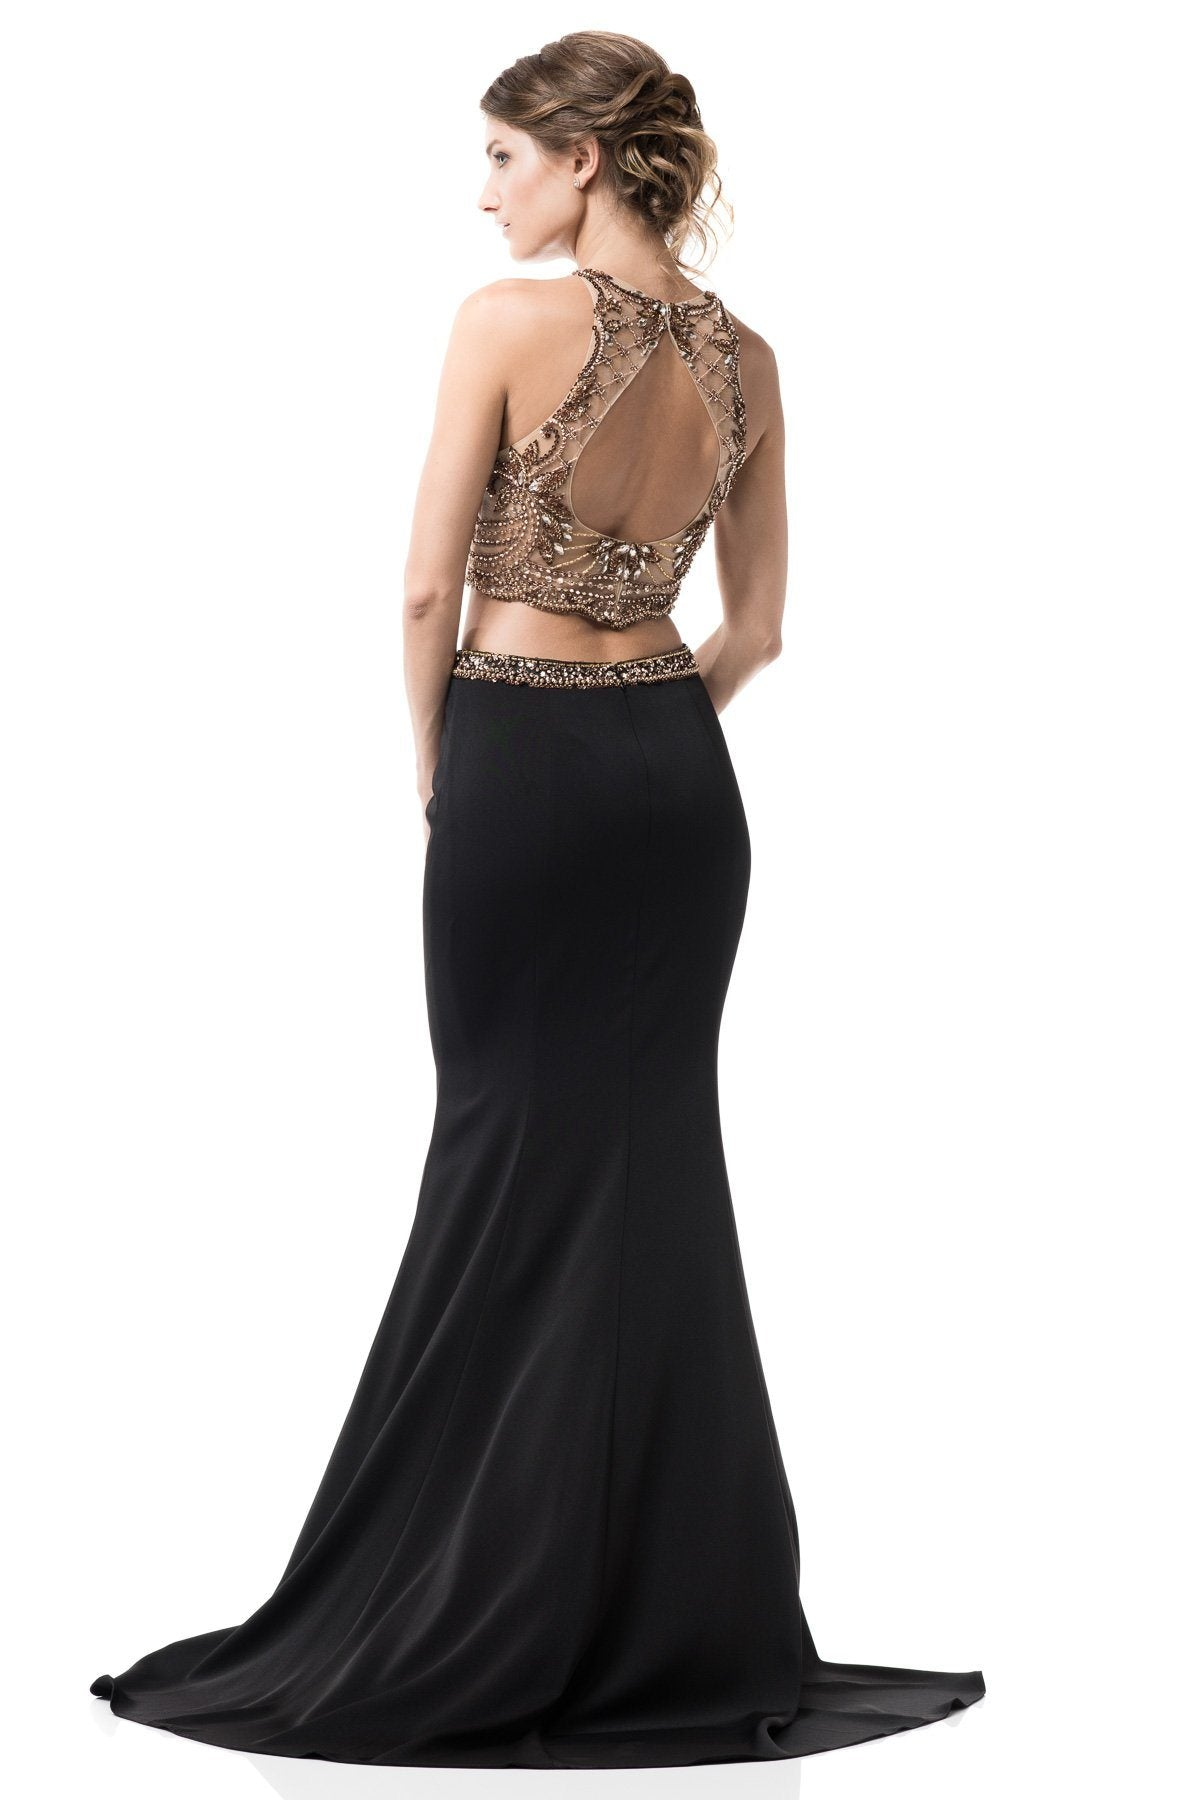 Black and gold 2 piece long prom dress BC-PS2210-Simply Fab Dress